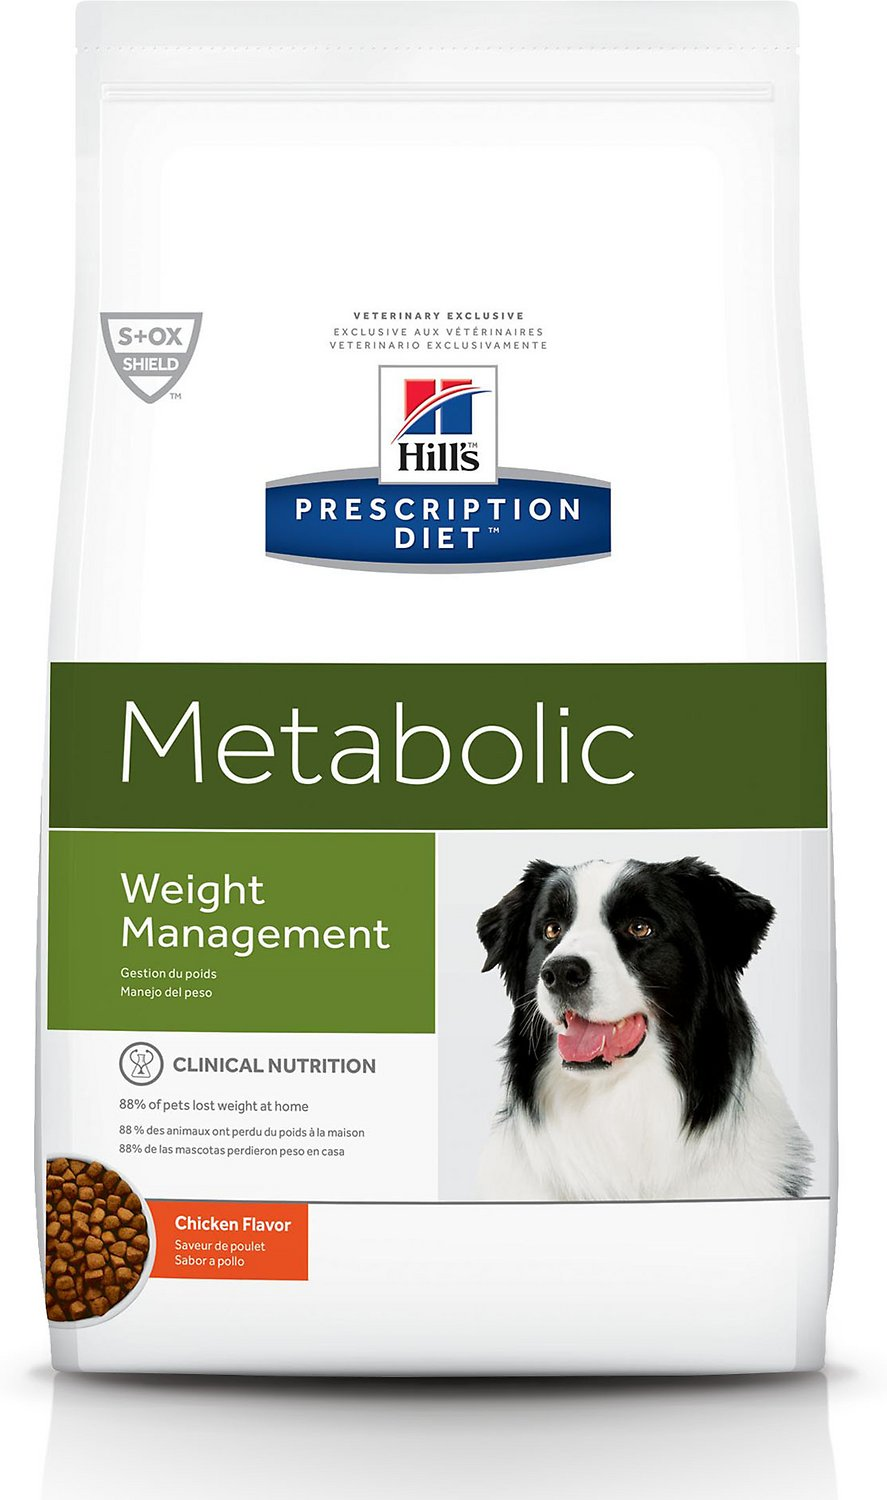 Hill's Prescription Diet Dog Food